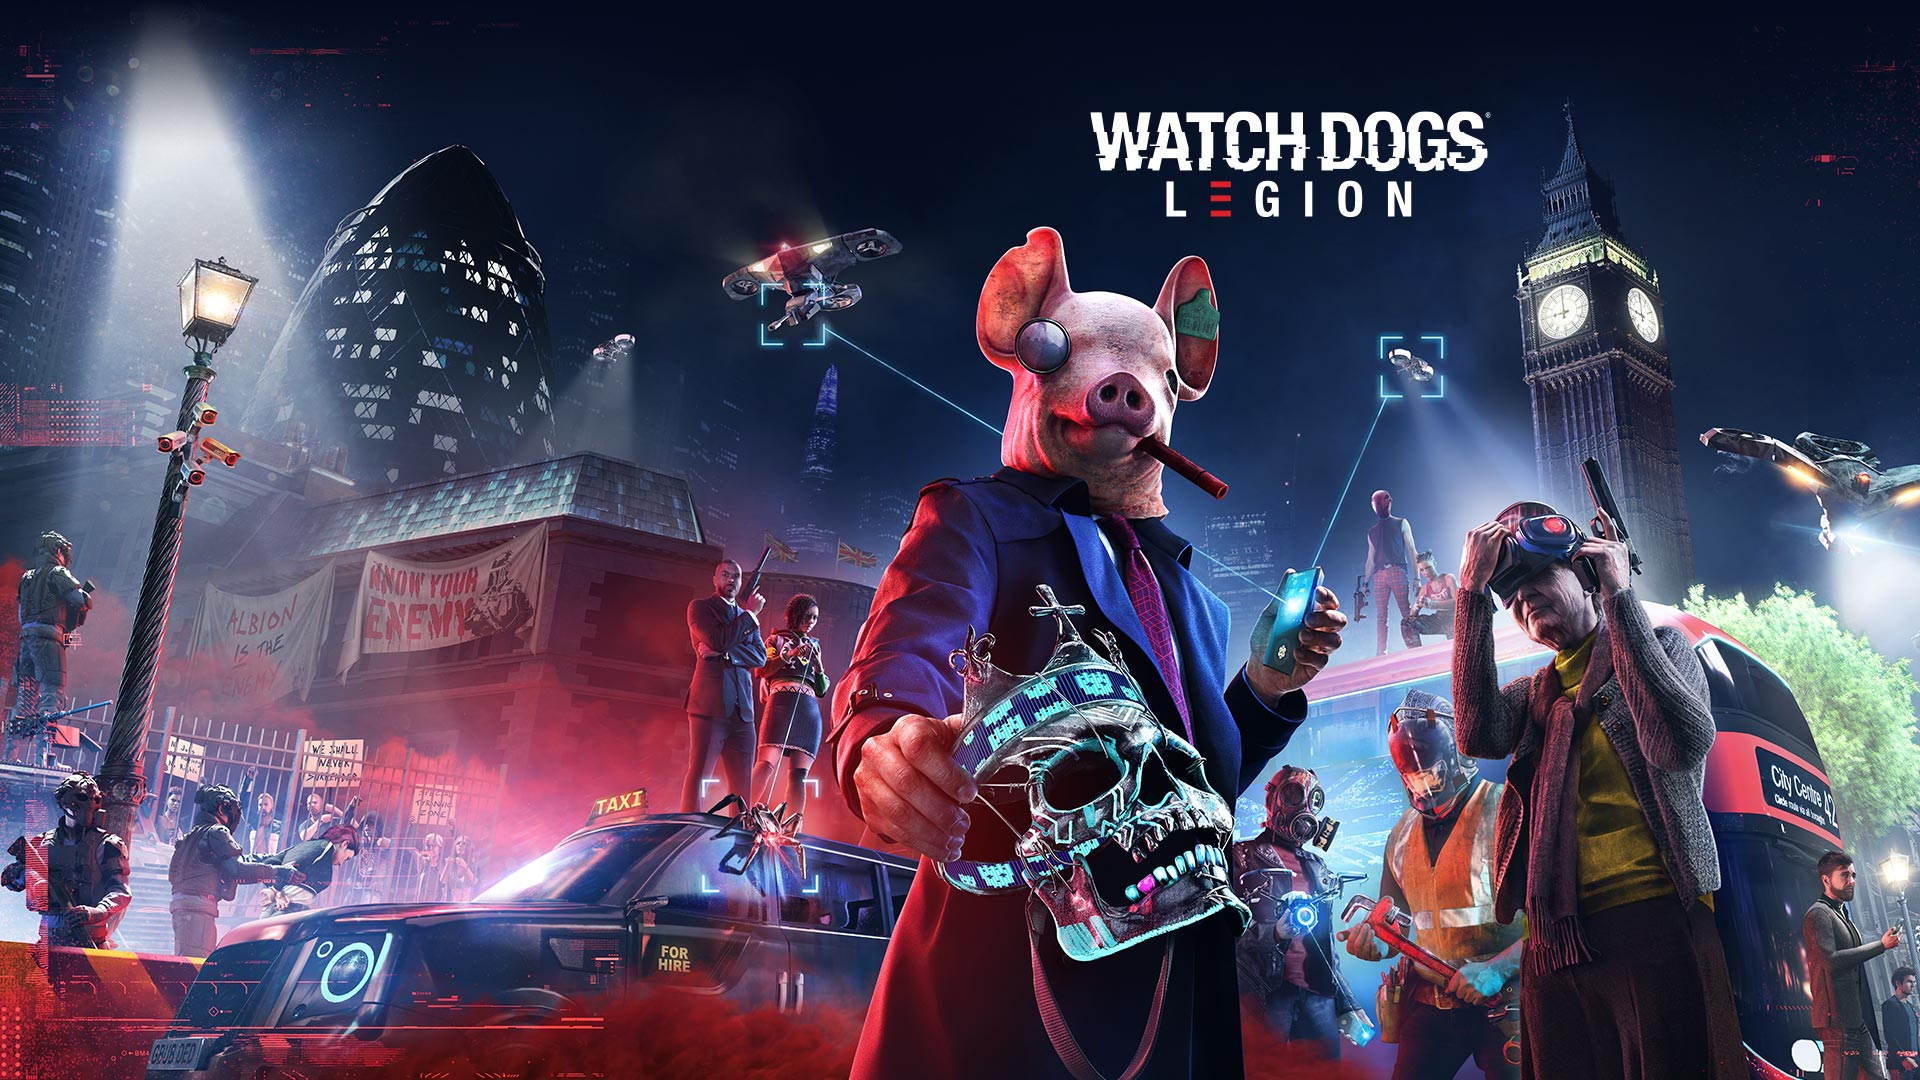 Watch Dogs Legion-logo, person med grisemaske som holder en skalle, to droner, Big Ben og flere andre karakterer med våpen